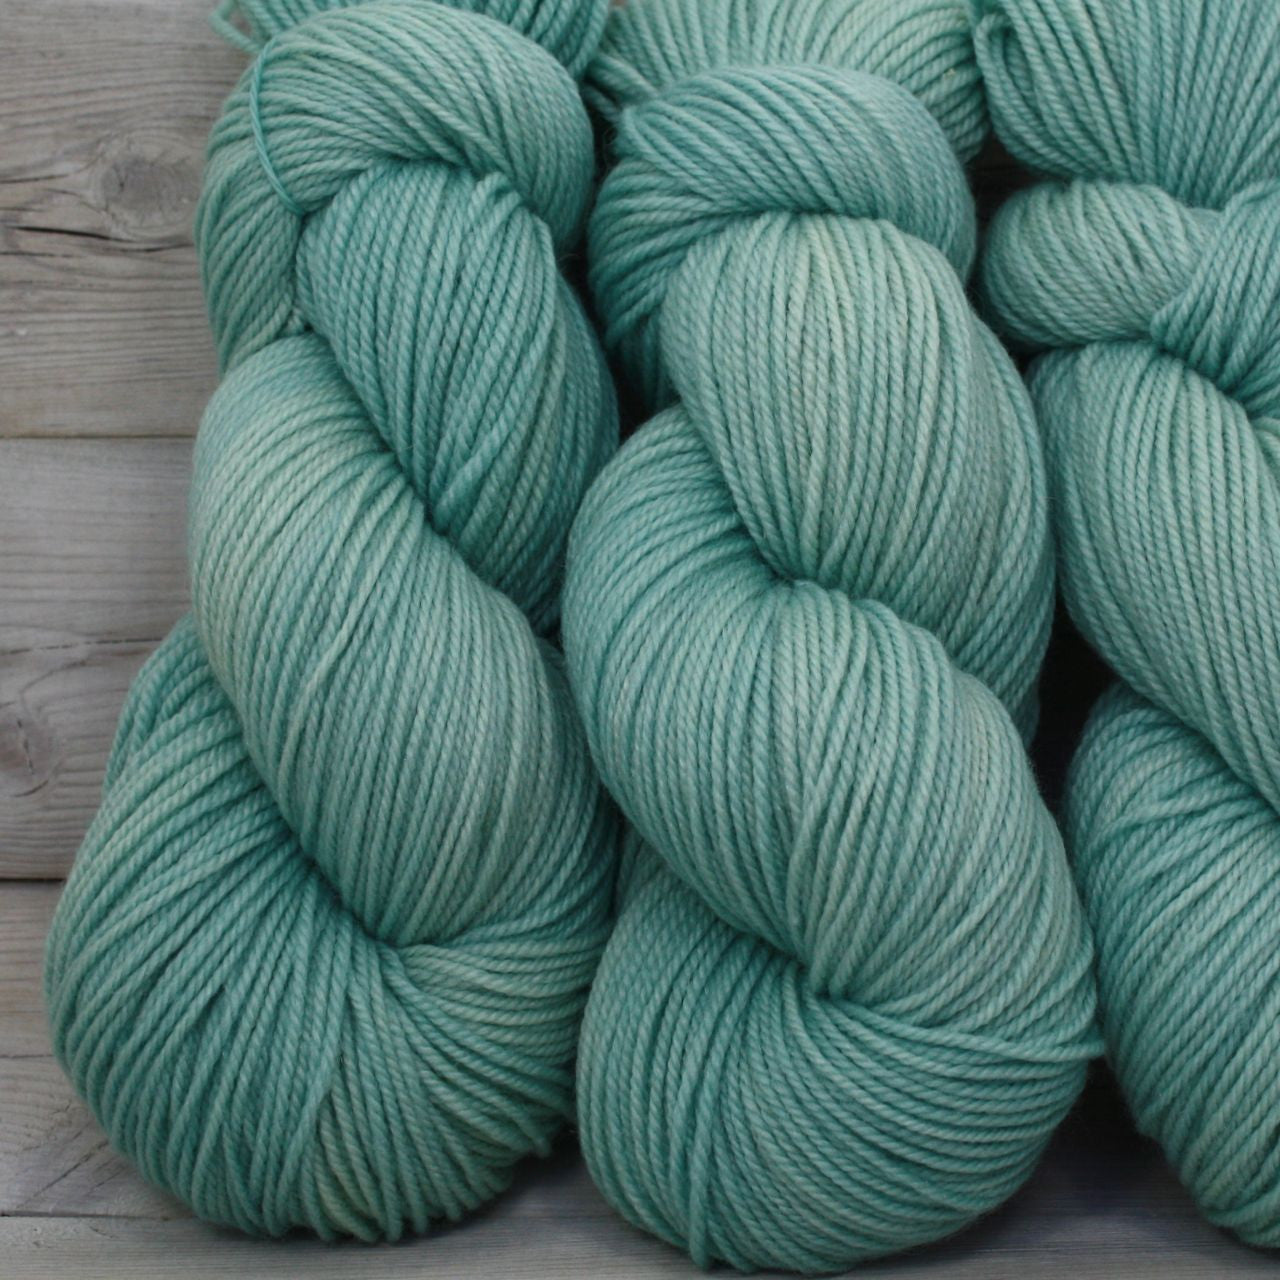 Colorway: Araucana | Dyed to Order Yarn